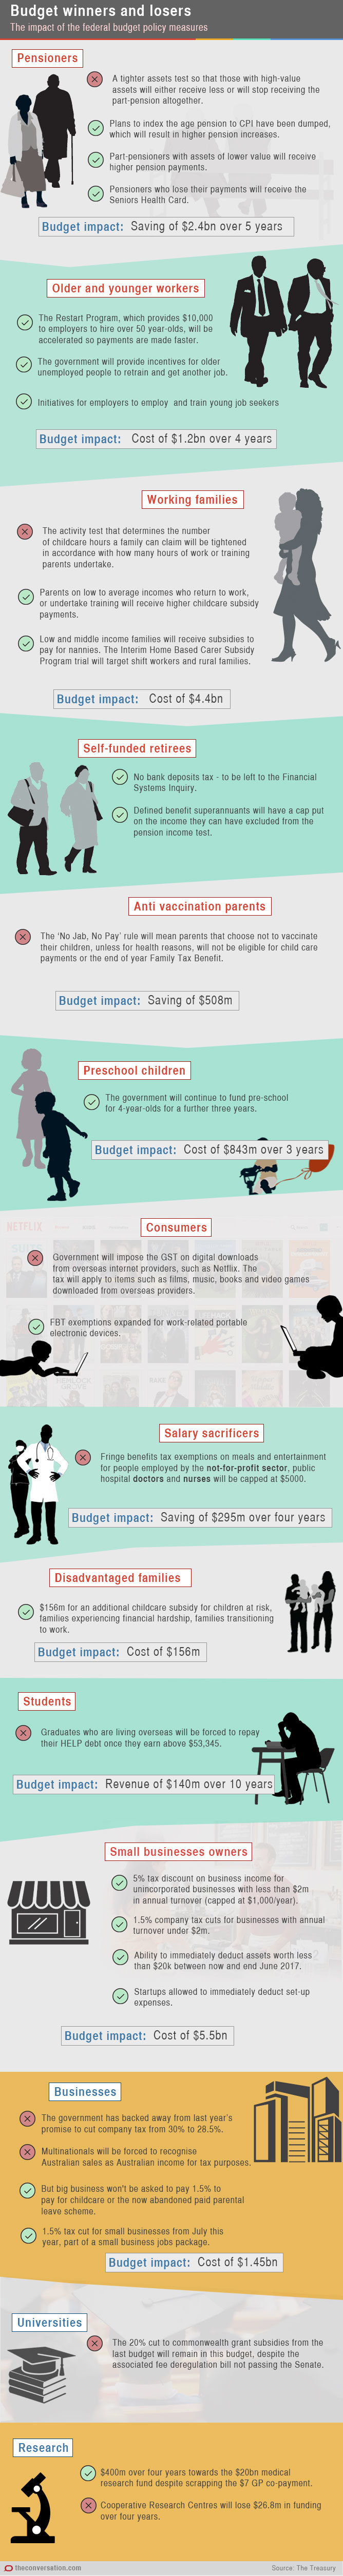 Budget 2015 Winners Losers Infographic Source: The Conversation